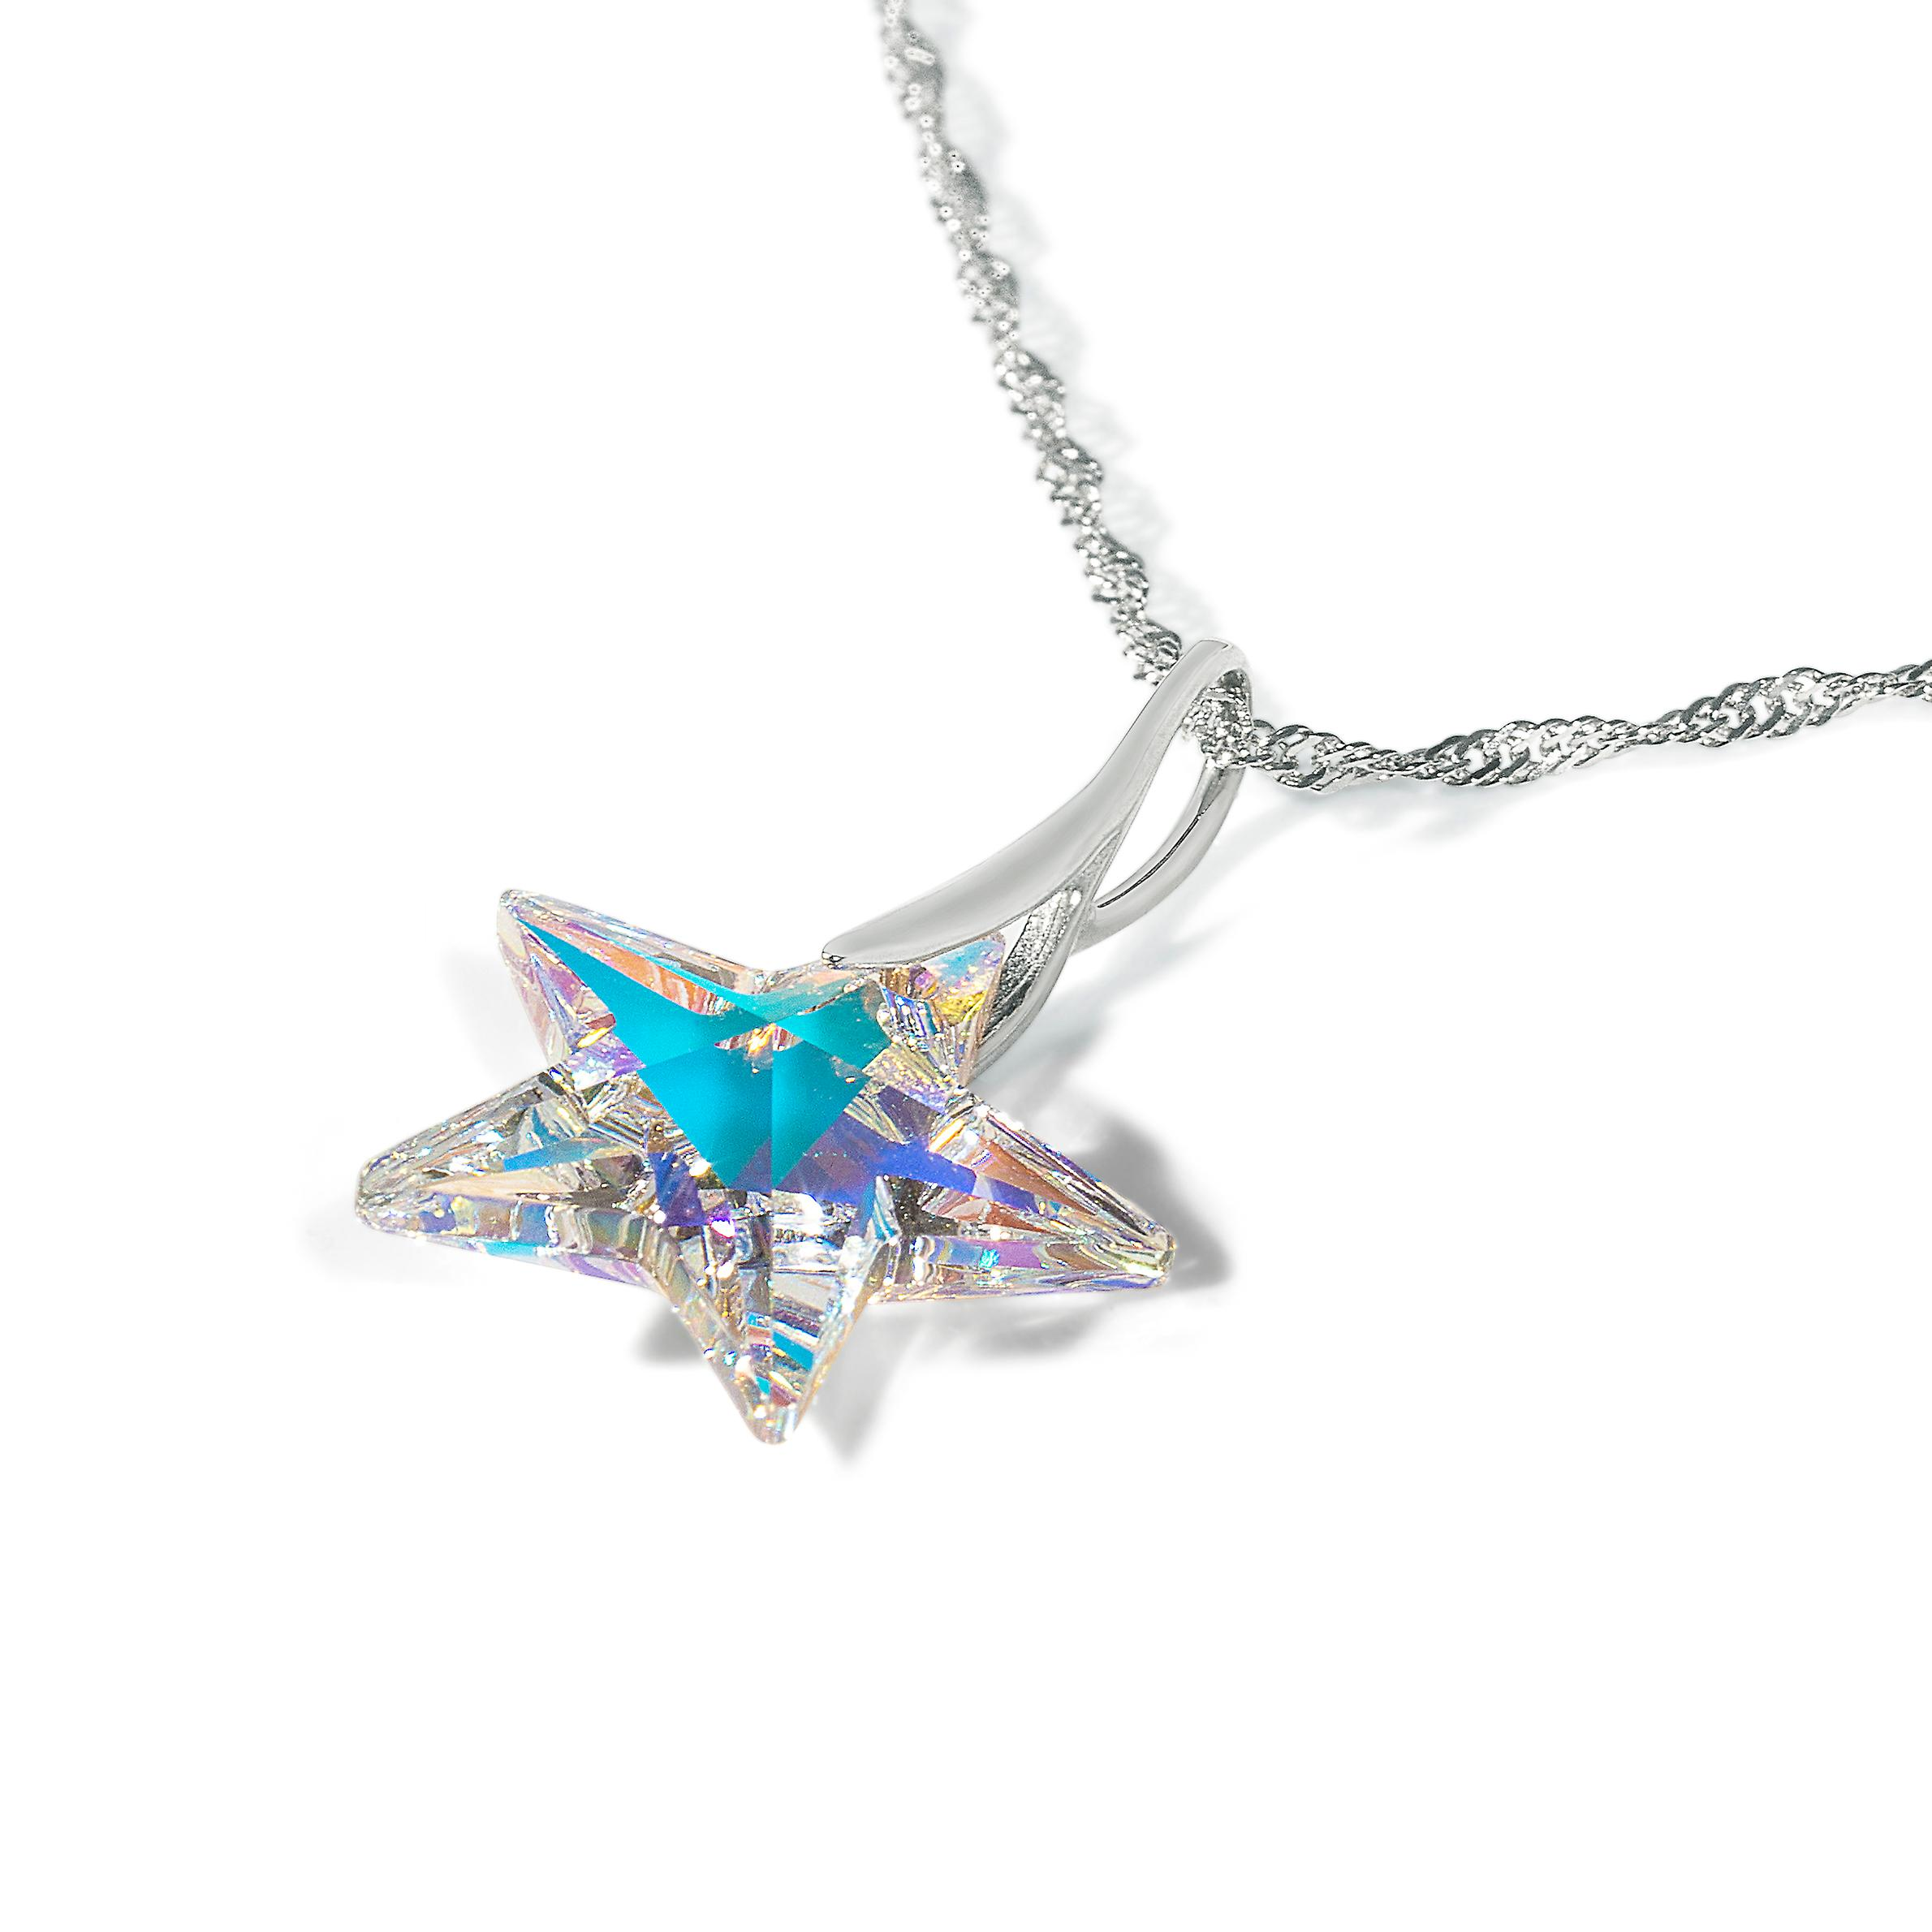 Ah! Jewellery Aurore Boreale Star Necklace in Sterling Silver